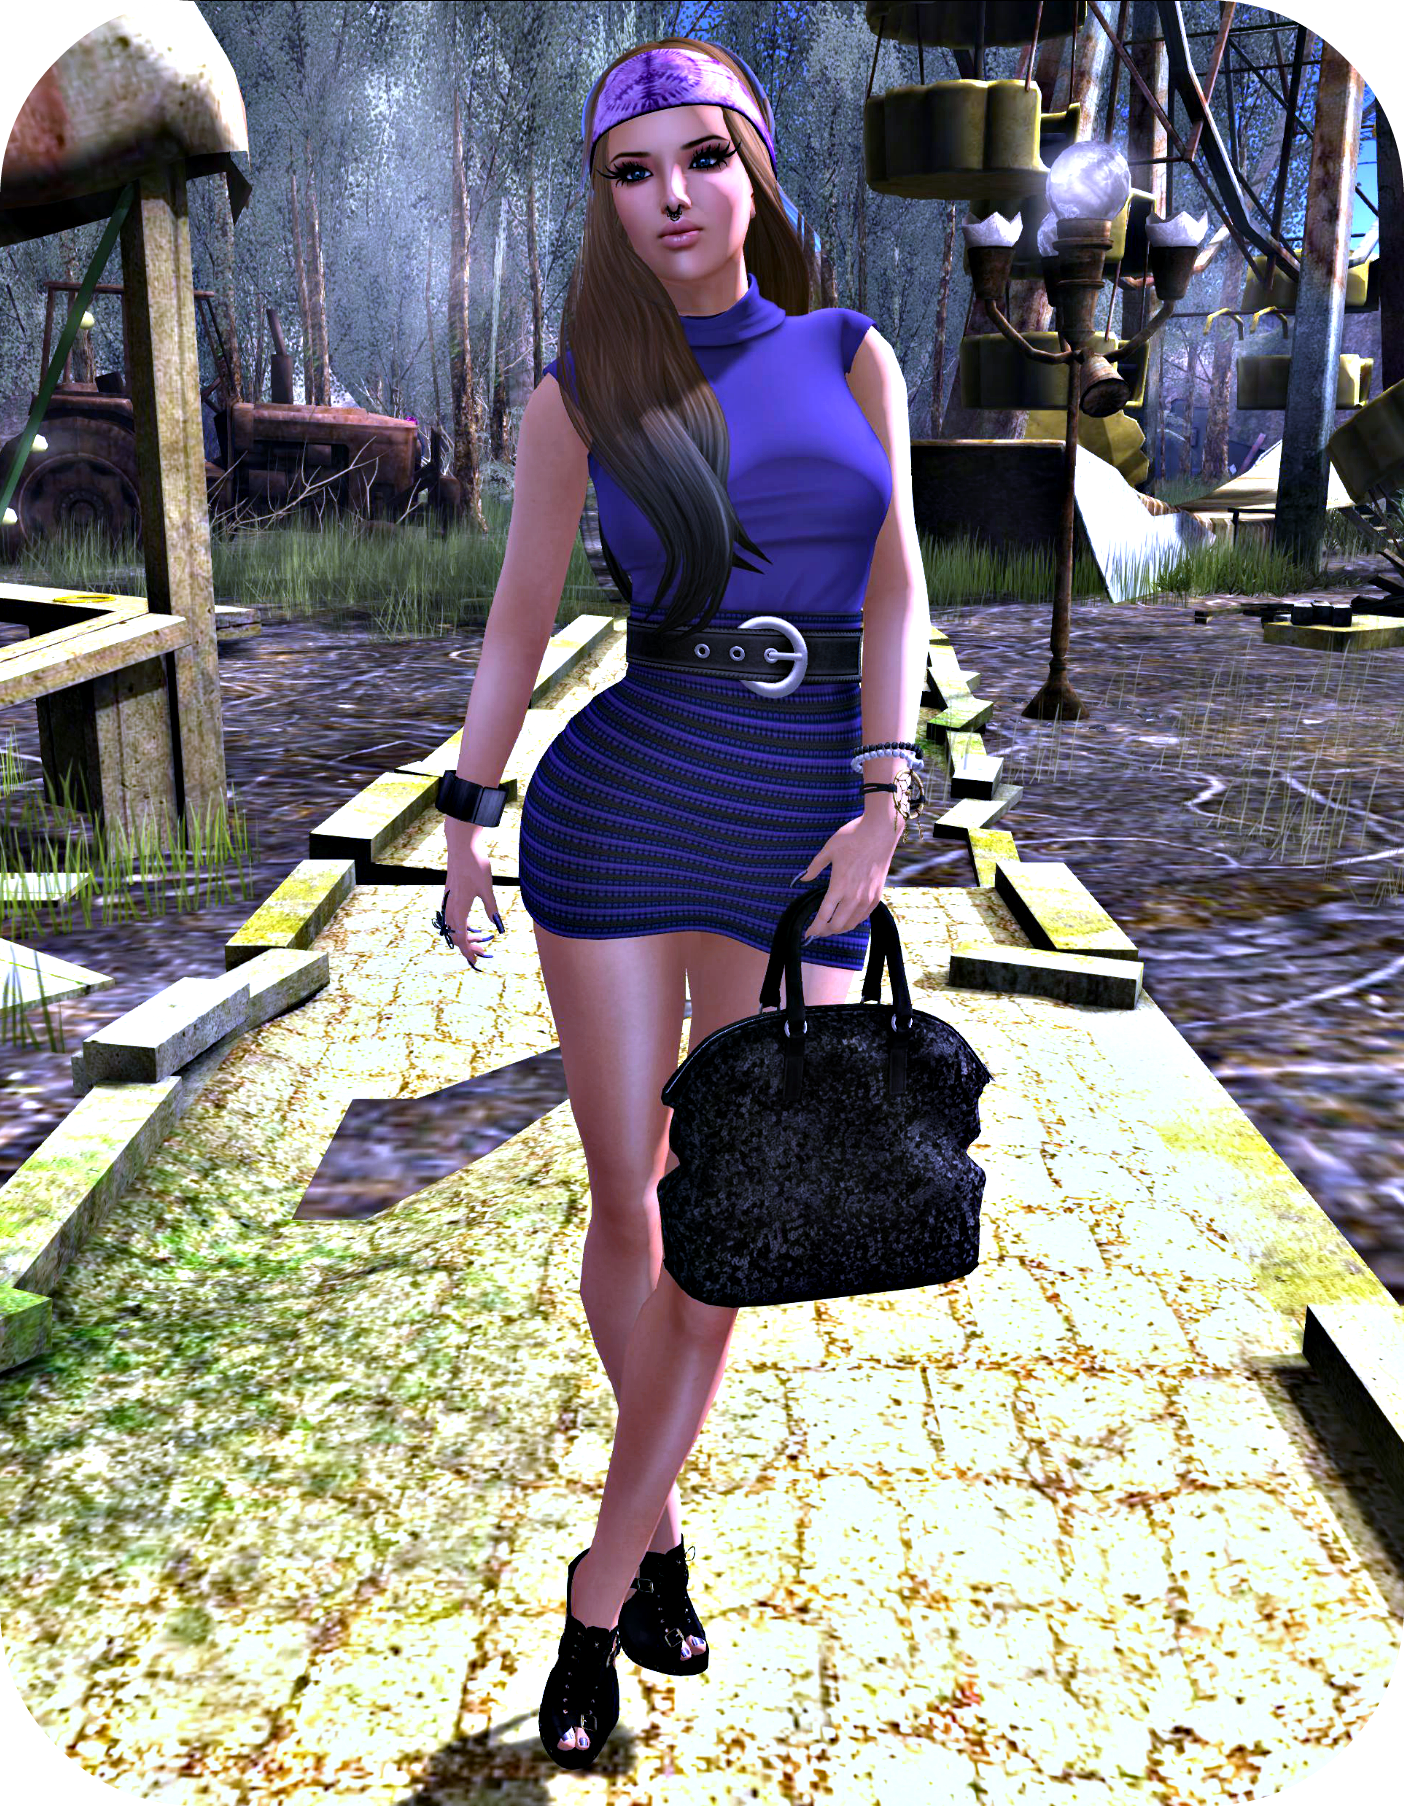 Tameless, GA, 7Deadly, Bedazzled, Lindy, Reign, Uber, Piercing, ZoZ, Baubles ED 1_cropped